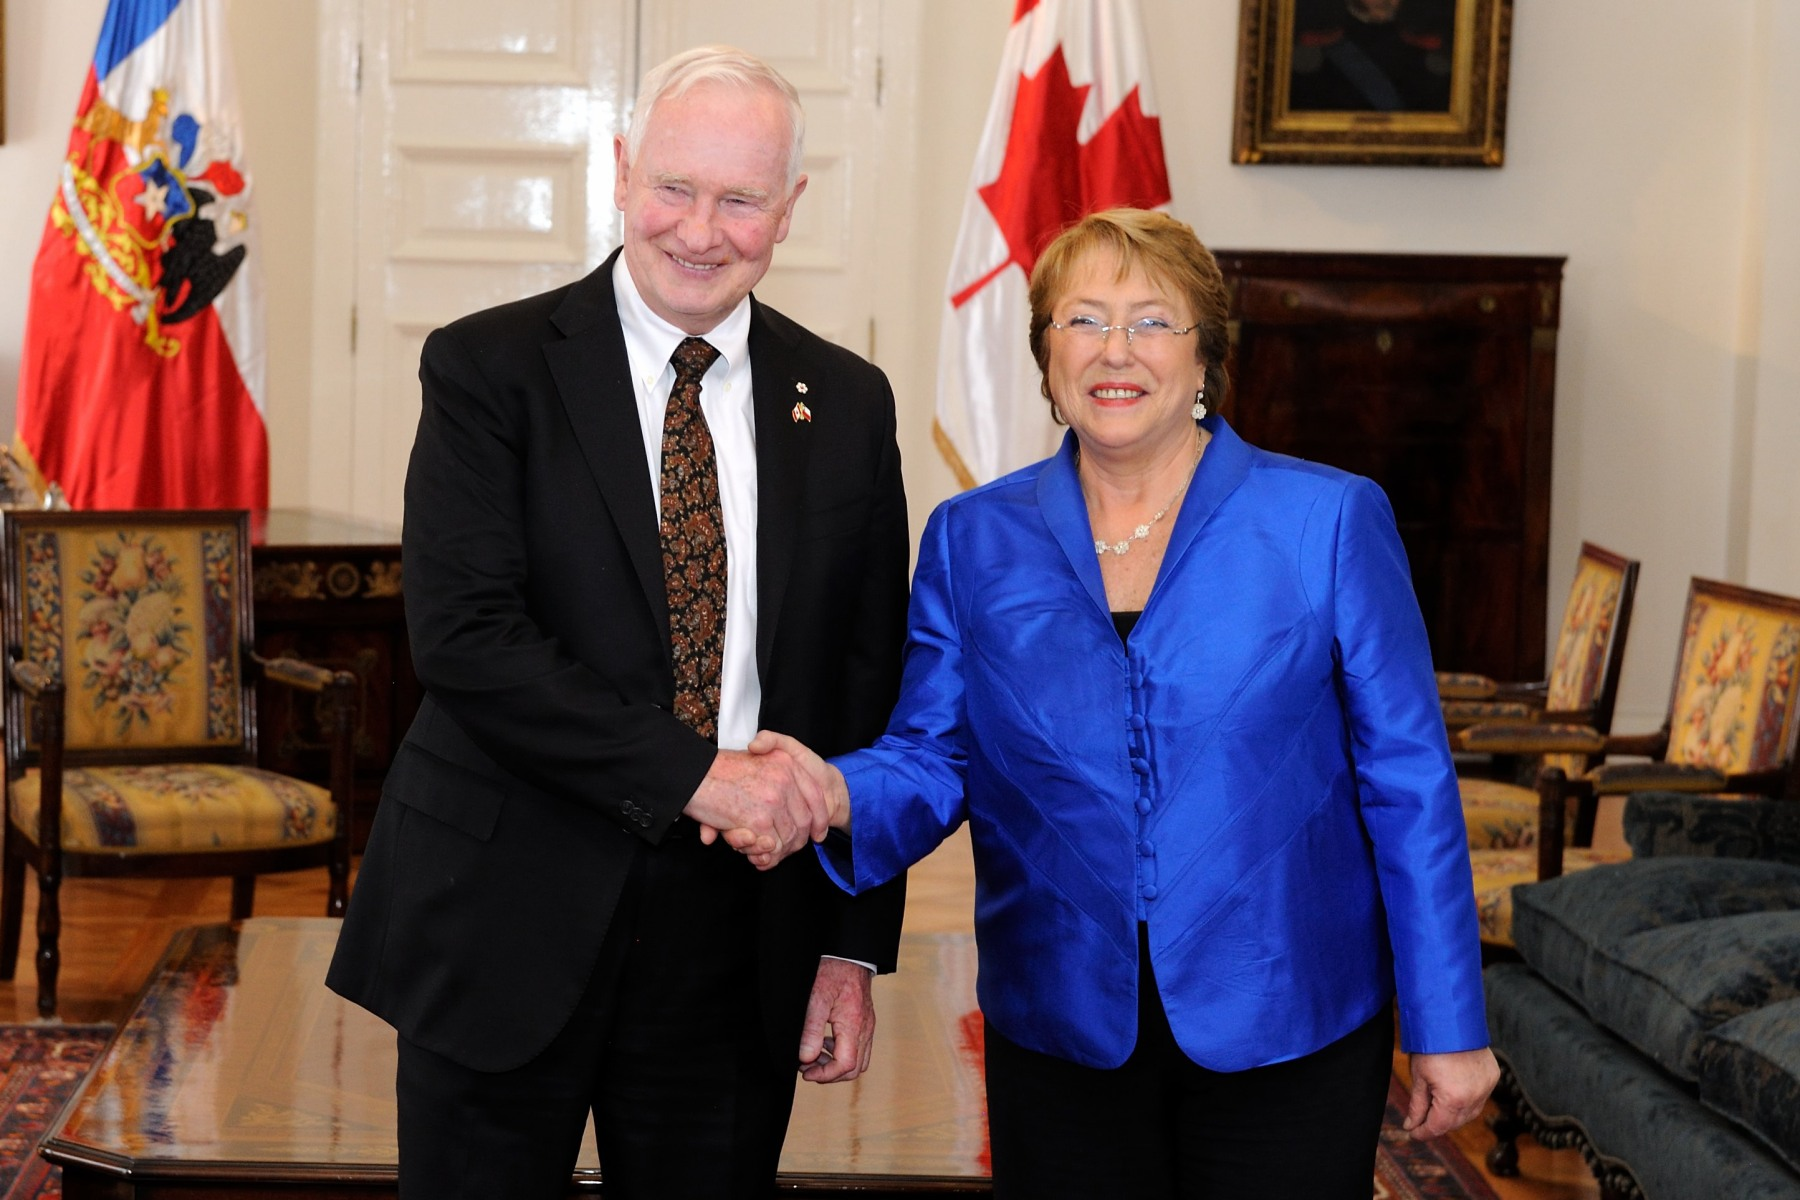 During his meeting with President Bachelet, the Governor General discussed Canada's ongoing strategic partnership with Chile.